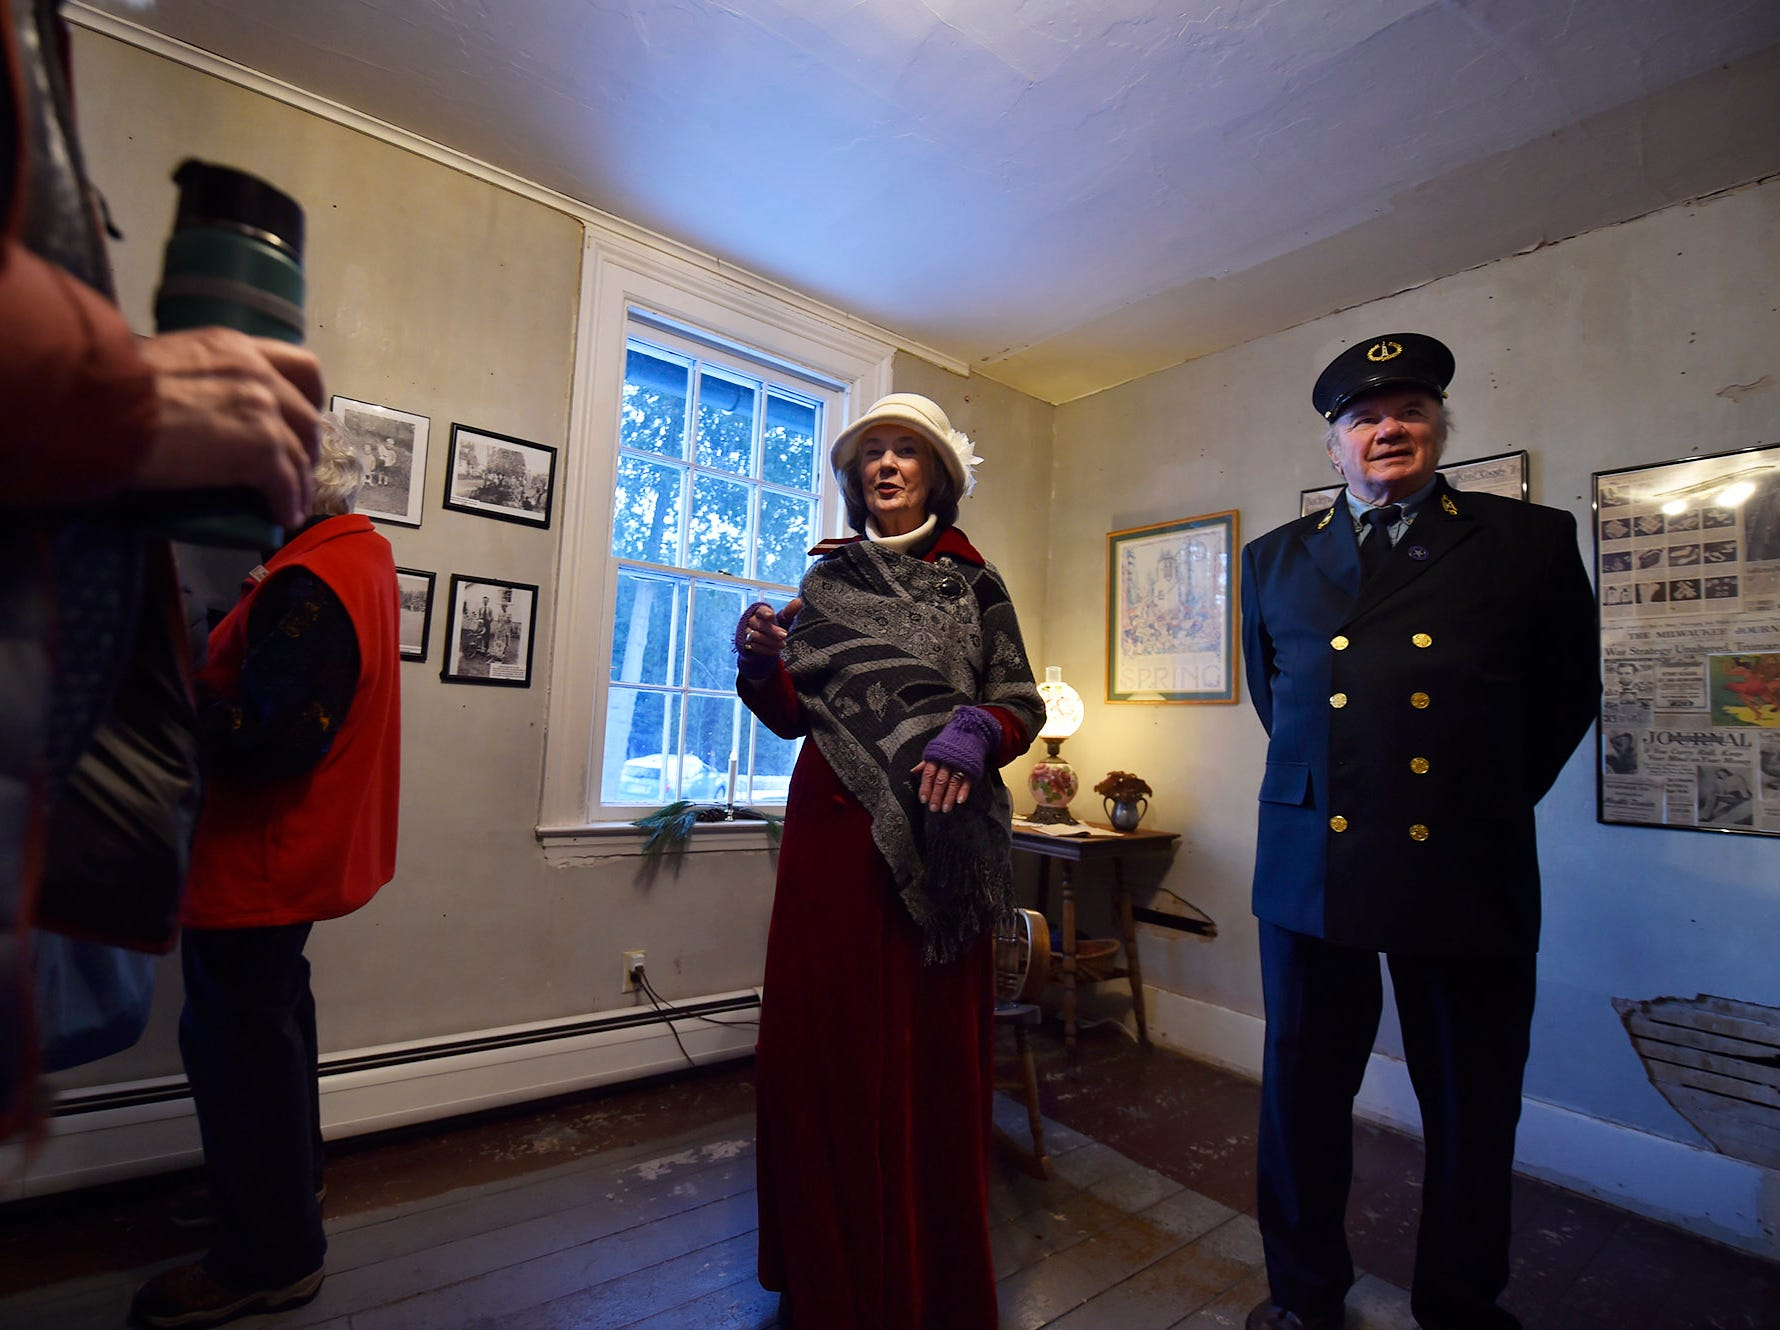 Portraying lightkeepers Henry and Eve Gattie (Ed Miller and Ann Sullivan), the couple provides information and tours of the newly renovated and remodeled upper Range Light during Natural Christmas at The Ridges Sanctuary, Baileys Harbor, on Saturday, Dec. 8, 2018. Tina M. Gohr/USA TODAY NETWORK-Wisconsin